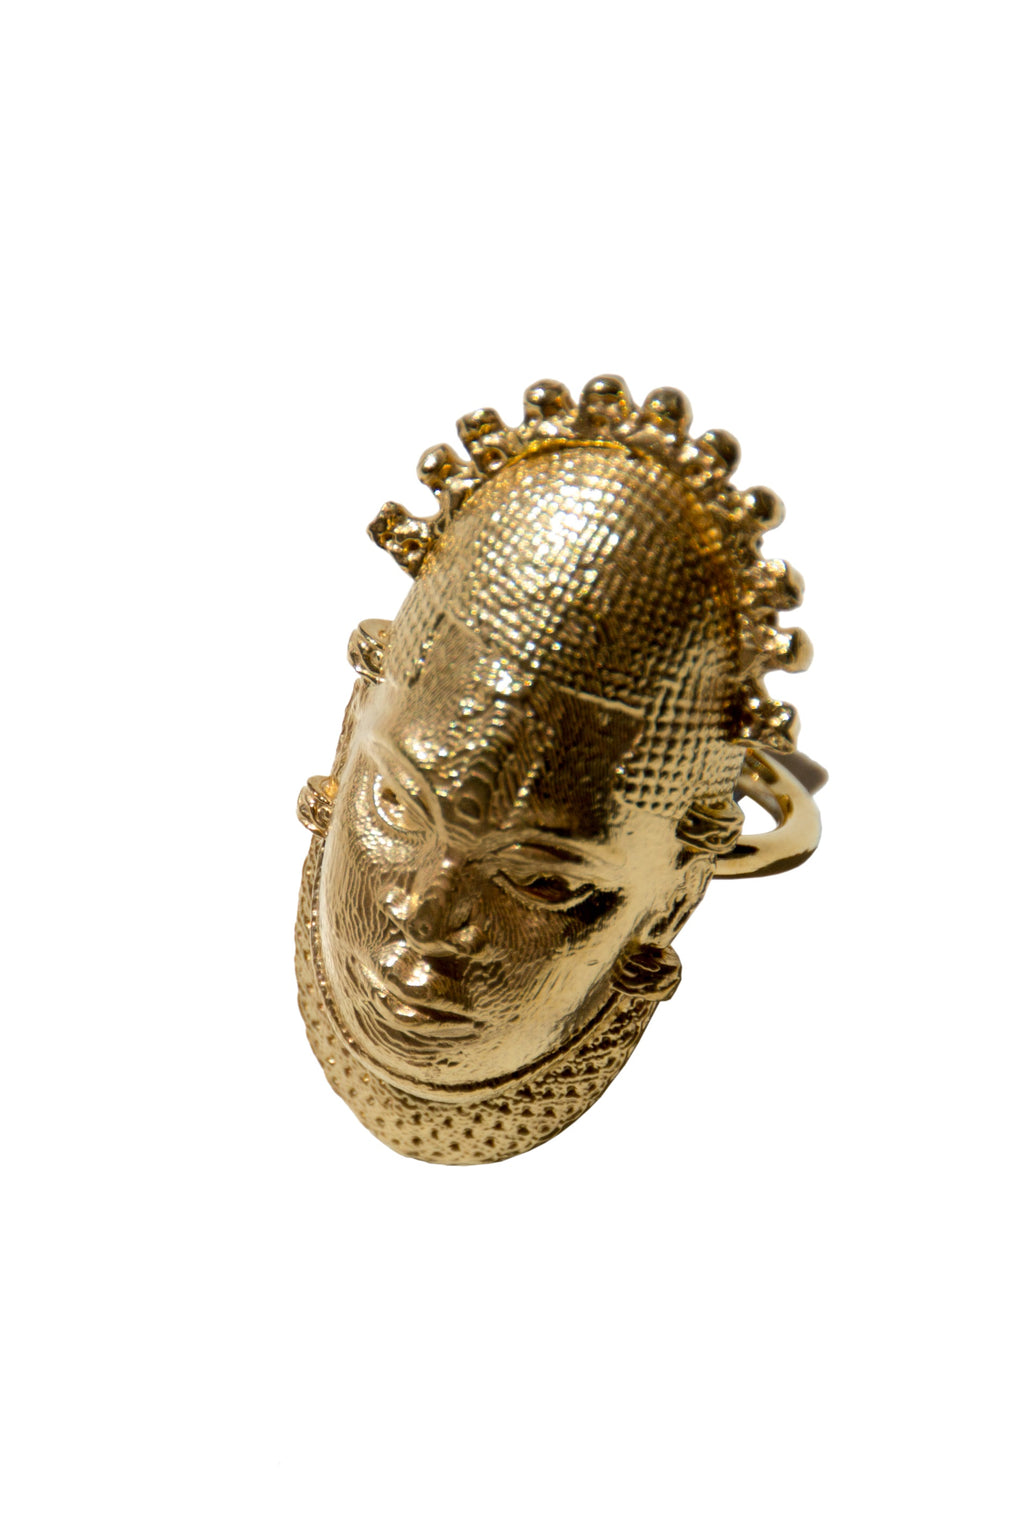 Iyoba Idia Mask Ring - Gold-Plated Bronze (Unisex and Adjustable)